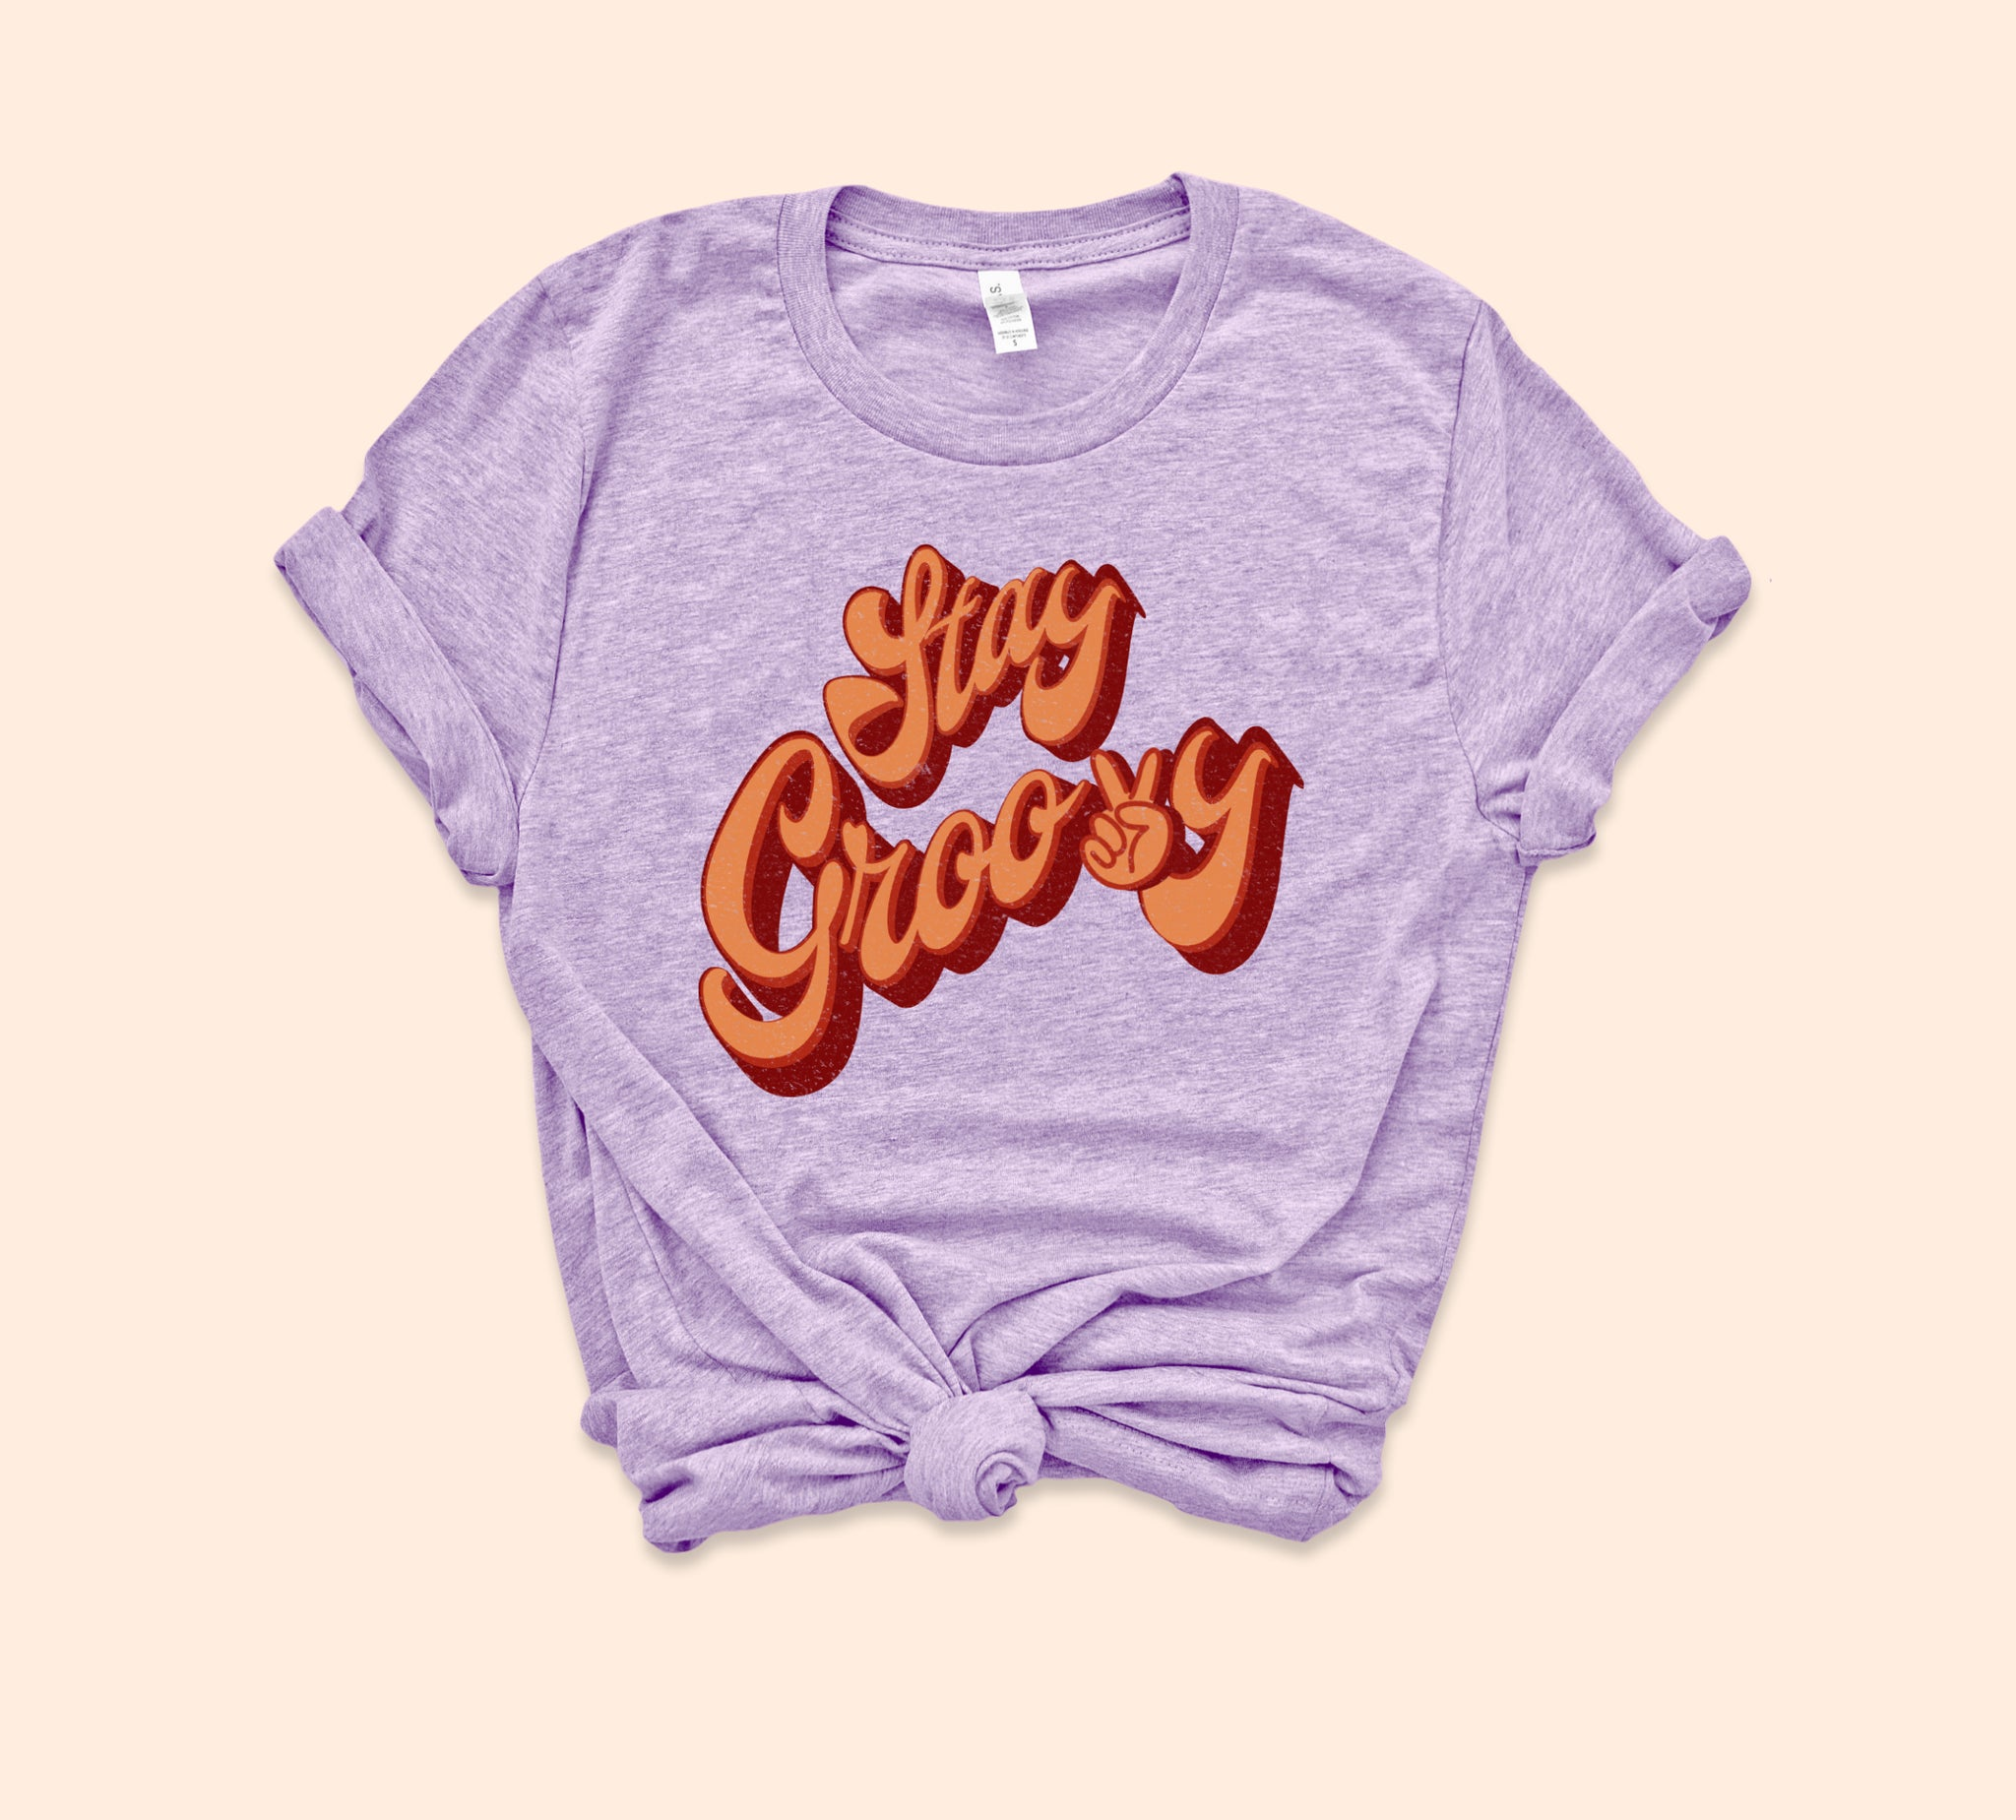 Heather lilac shirt that says stay groovy with a retro font - HighCiti